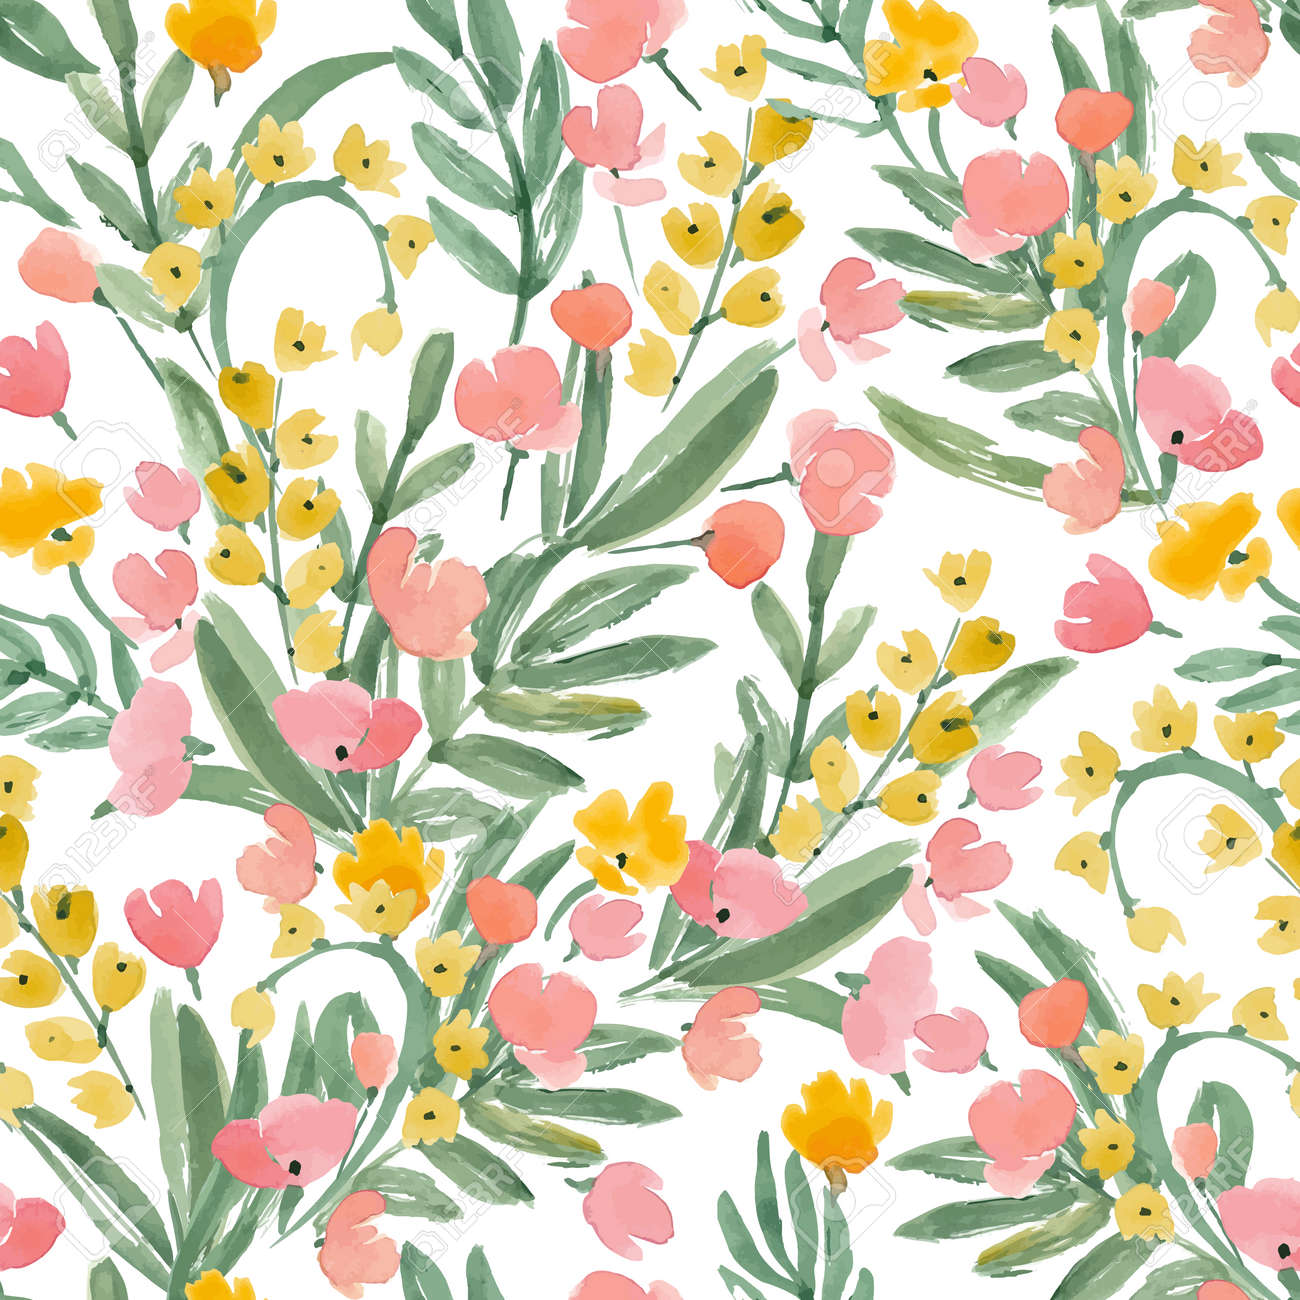 Vintage Watercolor Wallpaper Of Hand Drawn Flowers And Leaf